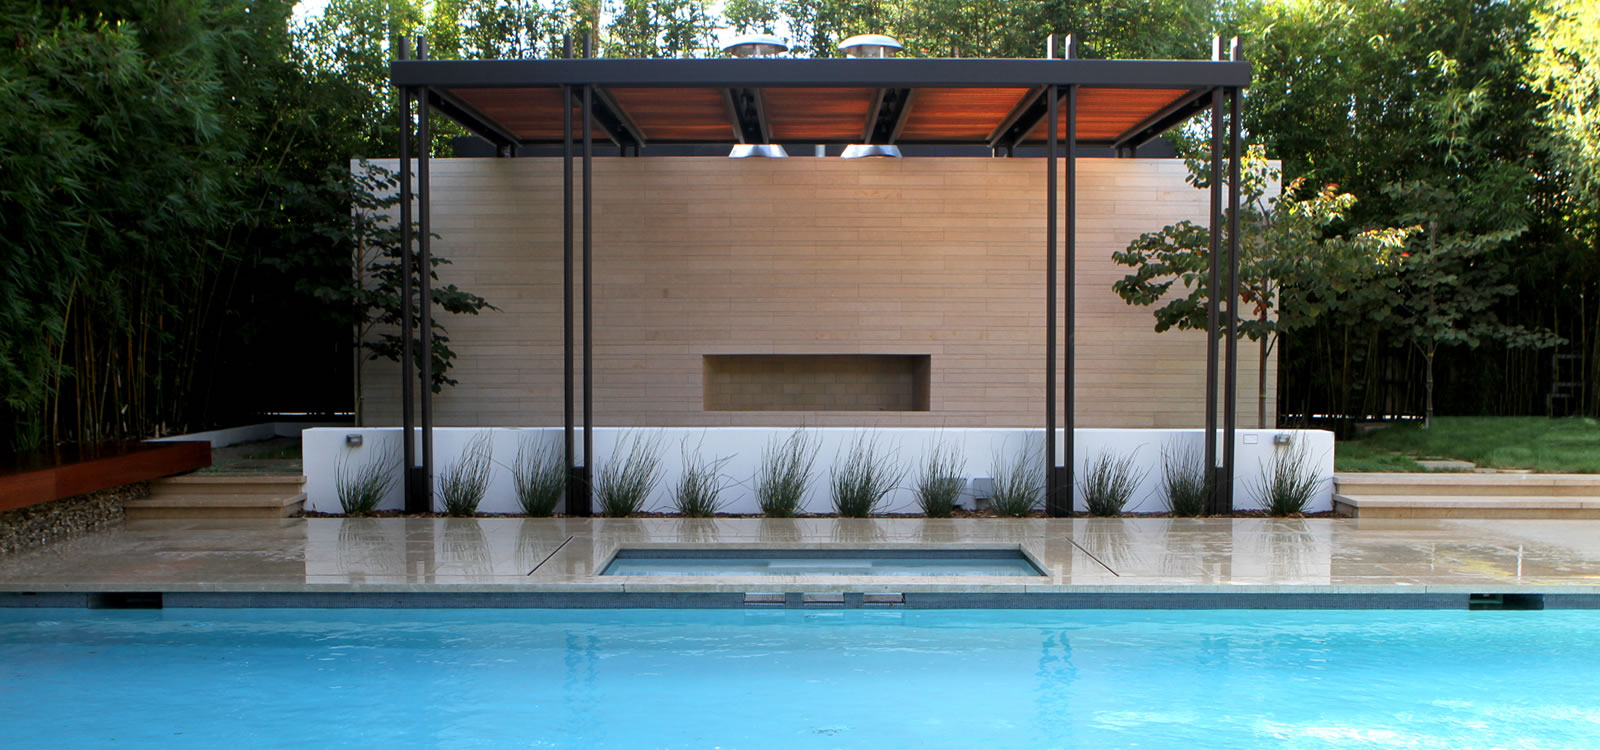 Beverly hills pool spa design with custom water feature for Pool design los angeles